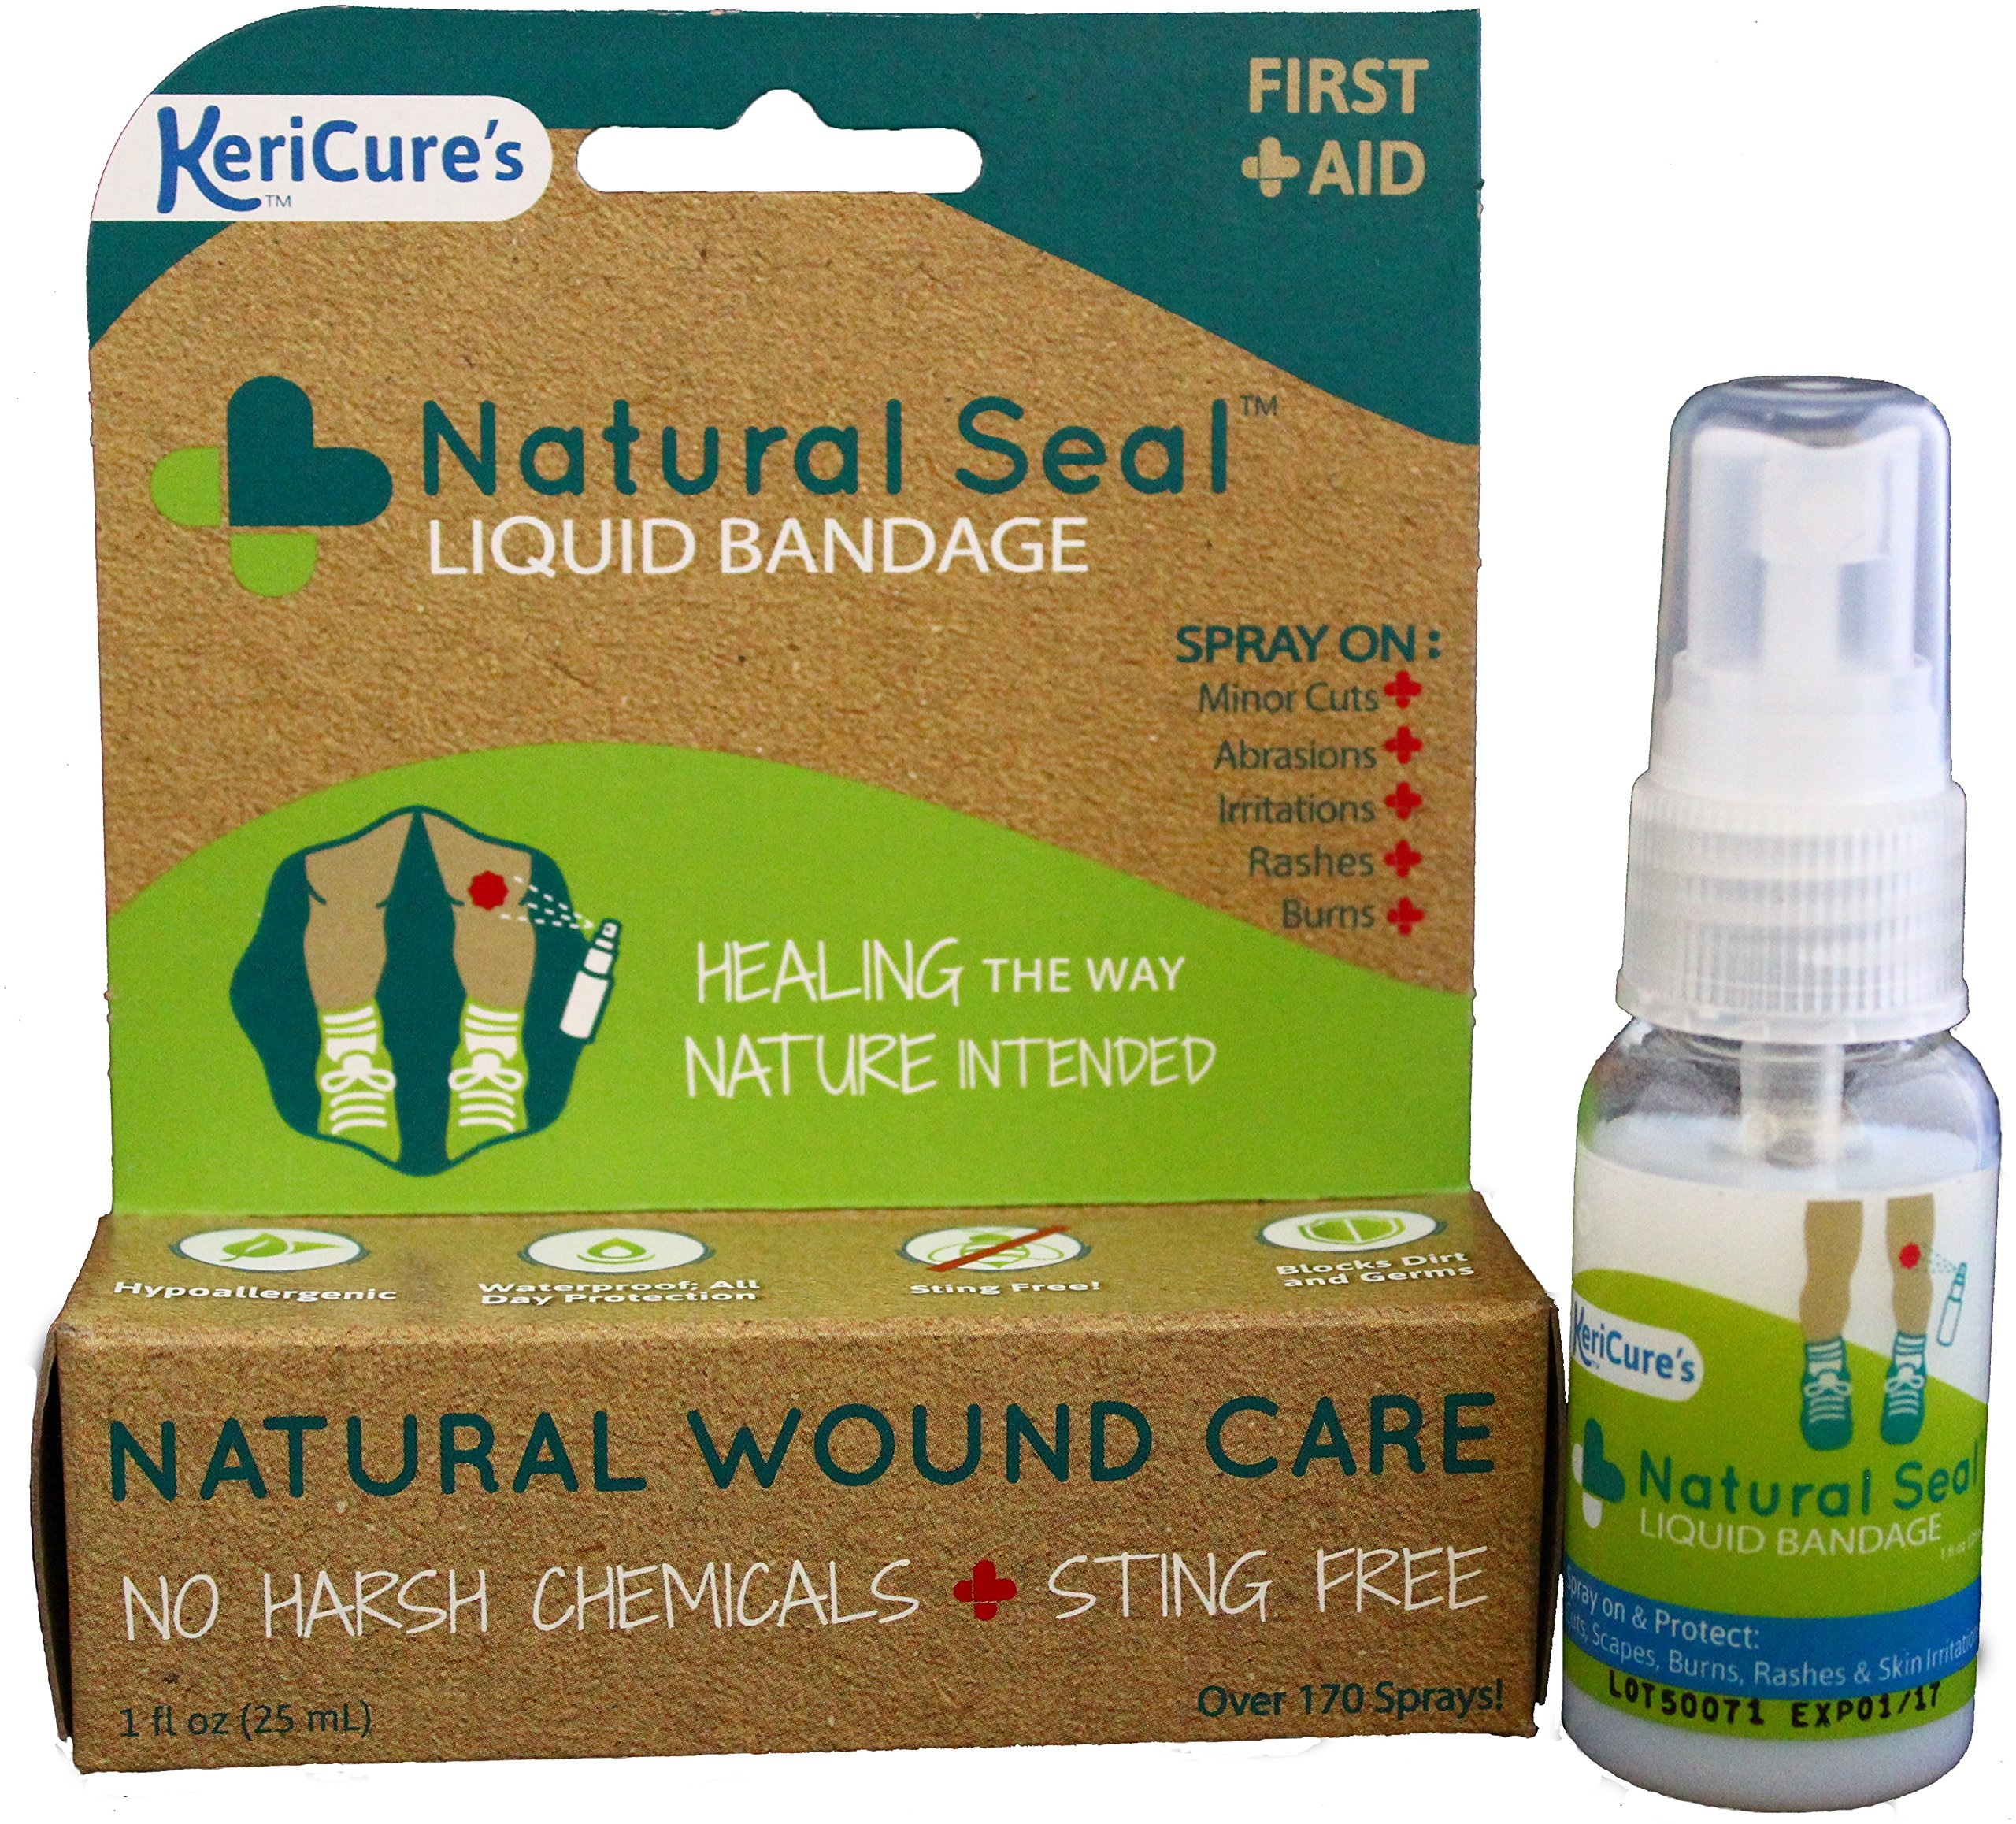 KeriCure's Natural Seal Invisible Liquid Bandage, Pack of 4, Soothe, seal and protect small cuts, scrapes, rashes and more - no harsh chemicals - sting free - moisturizing spray on bandage